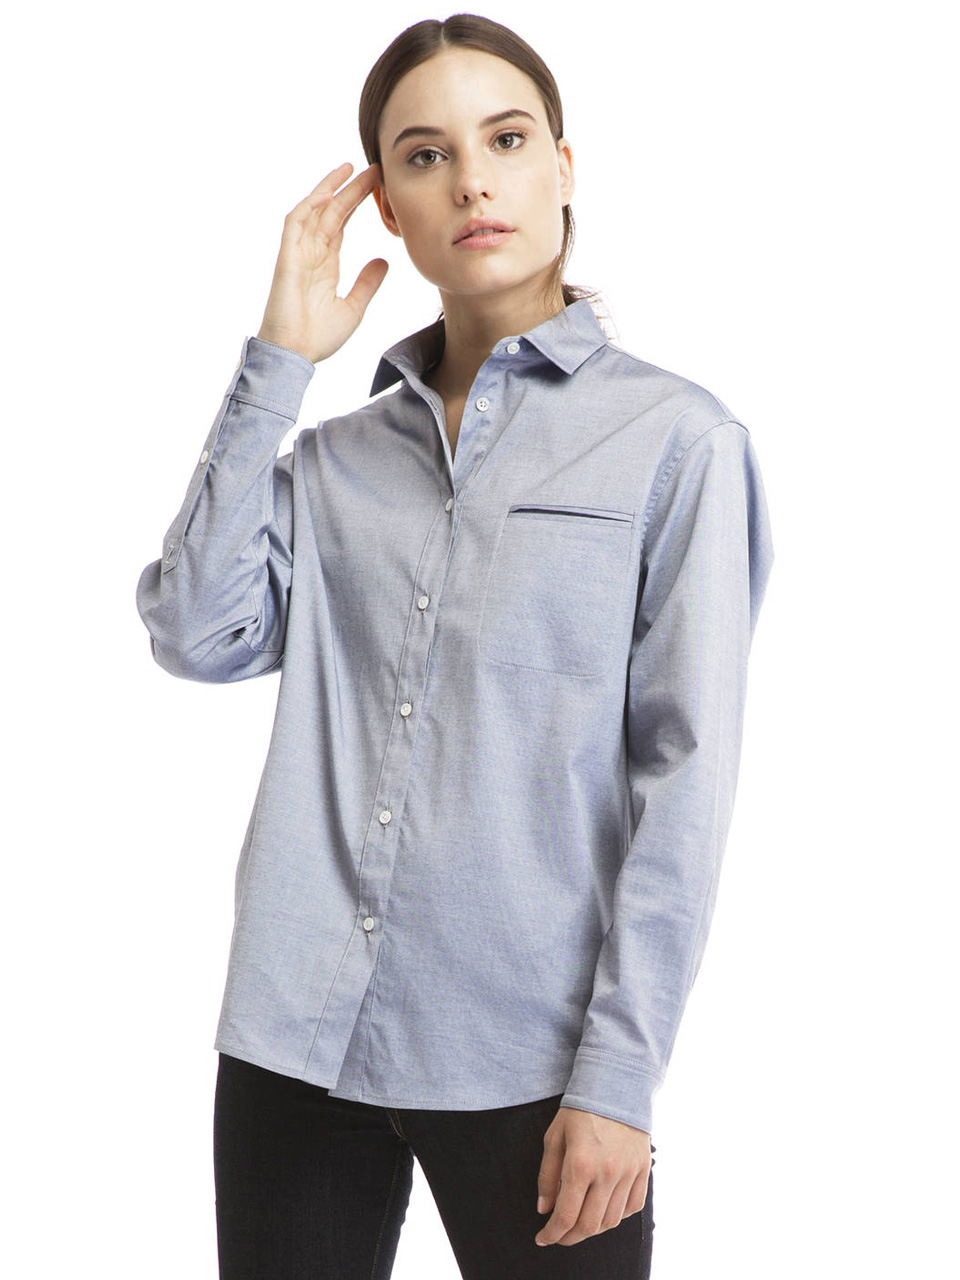 Boyfriend Button Up Shirt by Zady